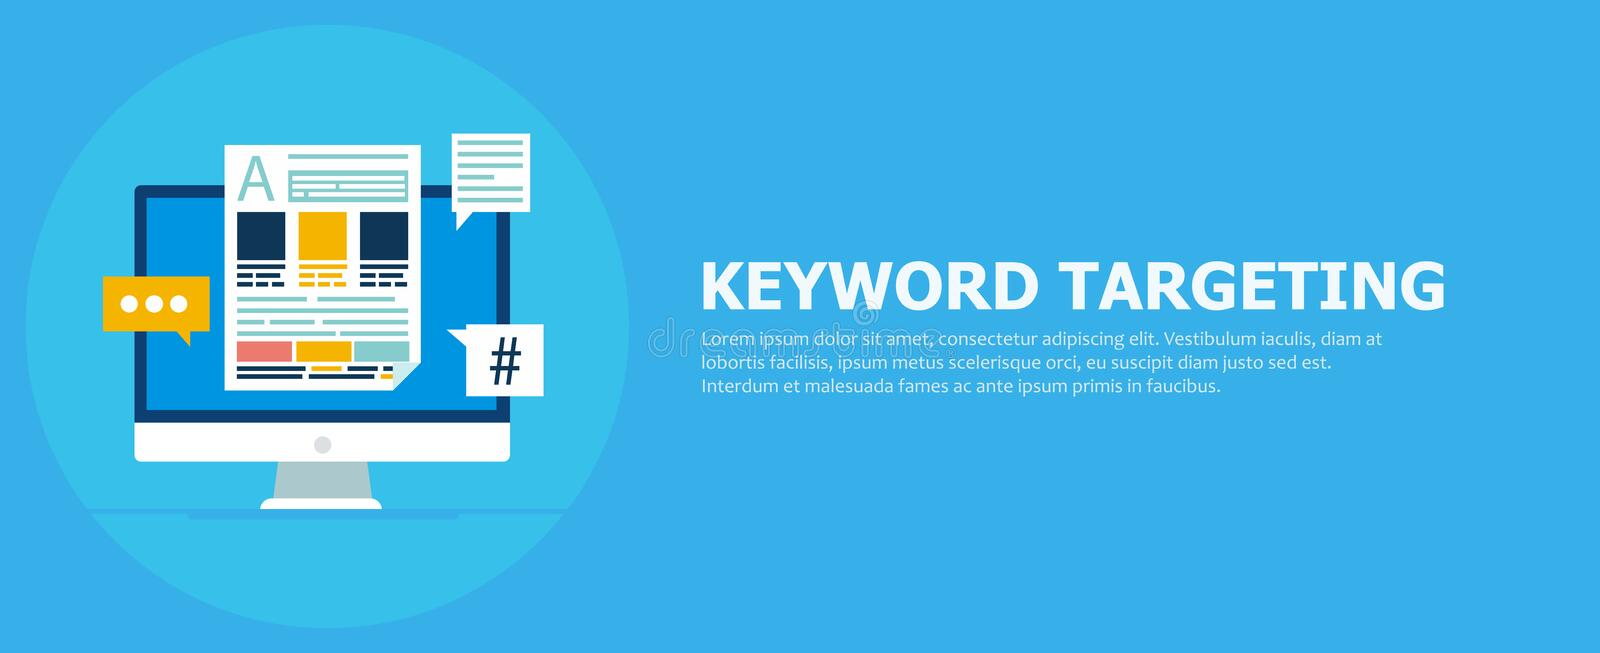 Keyword Targeting Banner. Computer with text and icons stock illustration